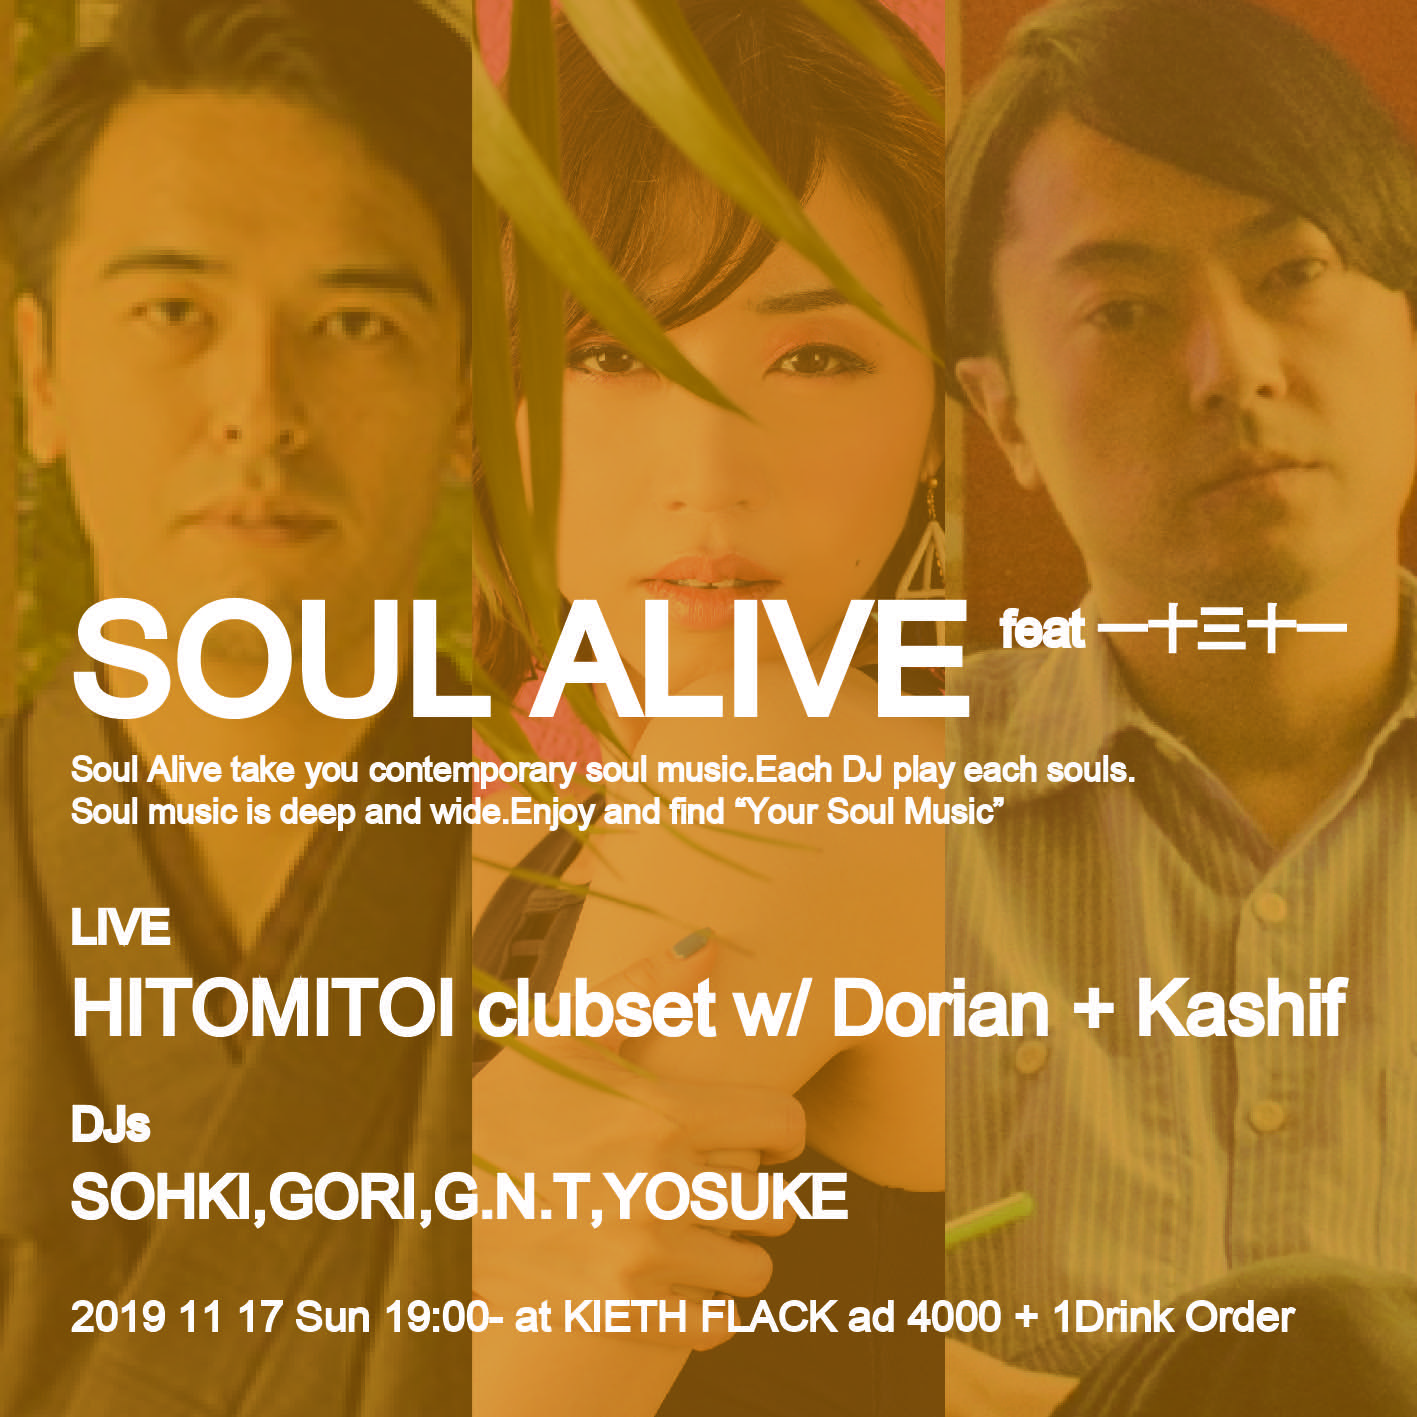 一十三十一(HITOMITOI)福岡ライブ 2019 SOUL ALIVE at KIETH FLACK